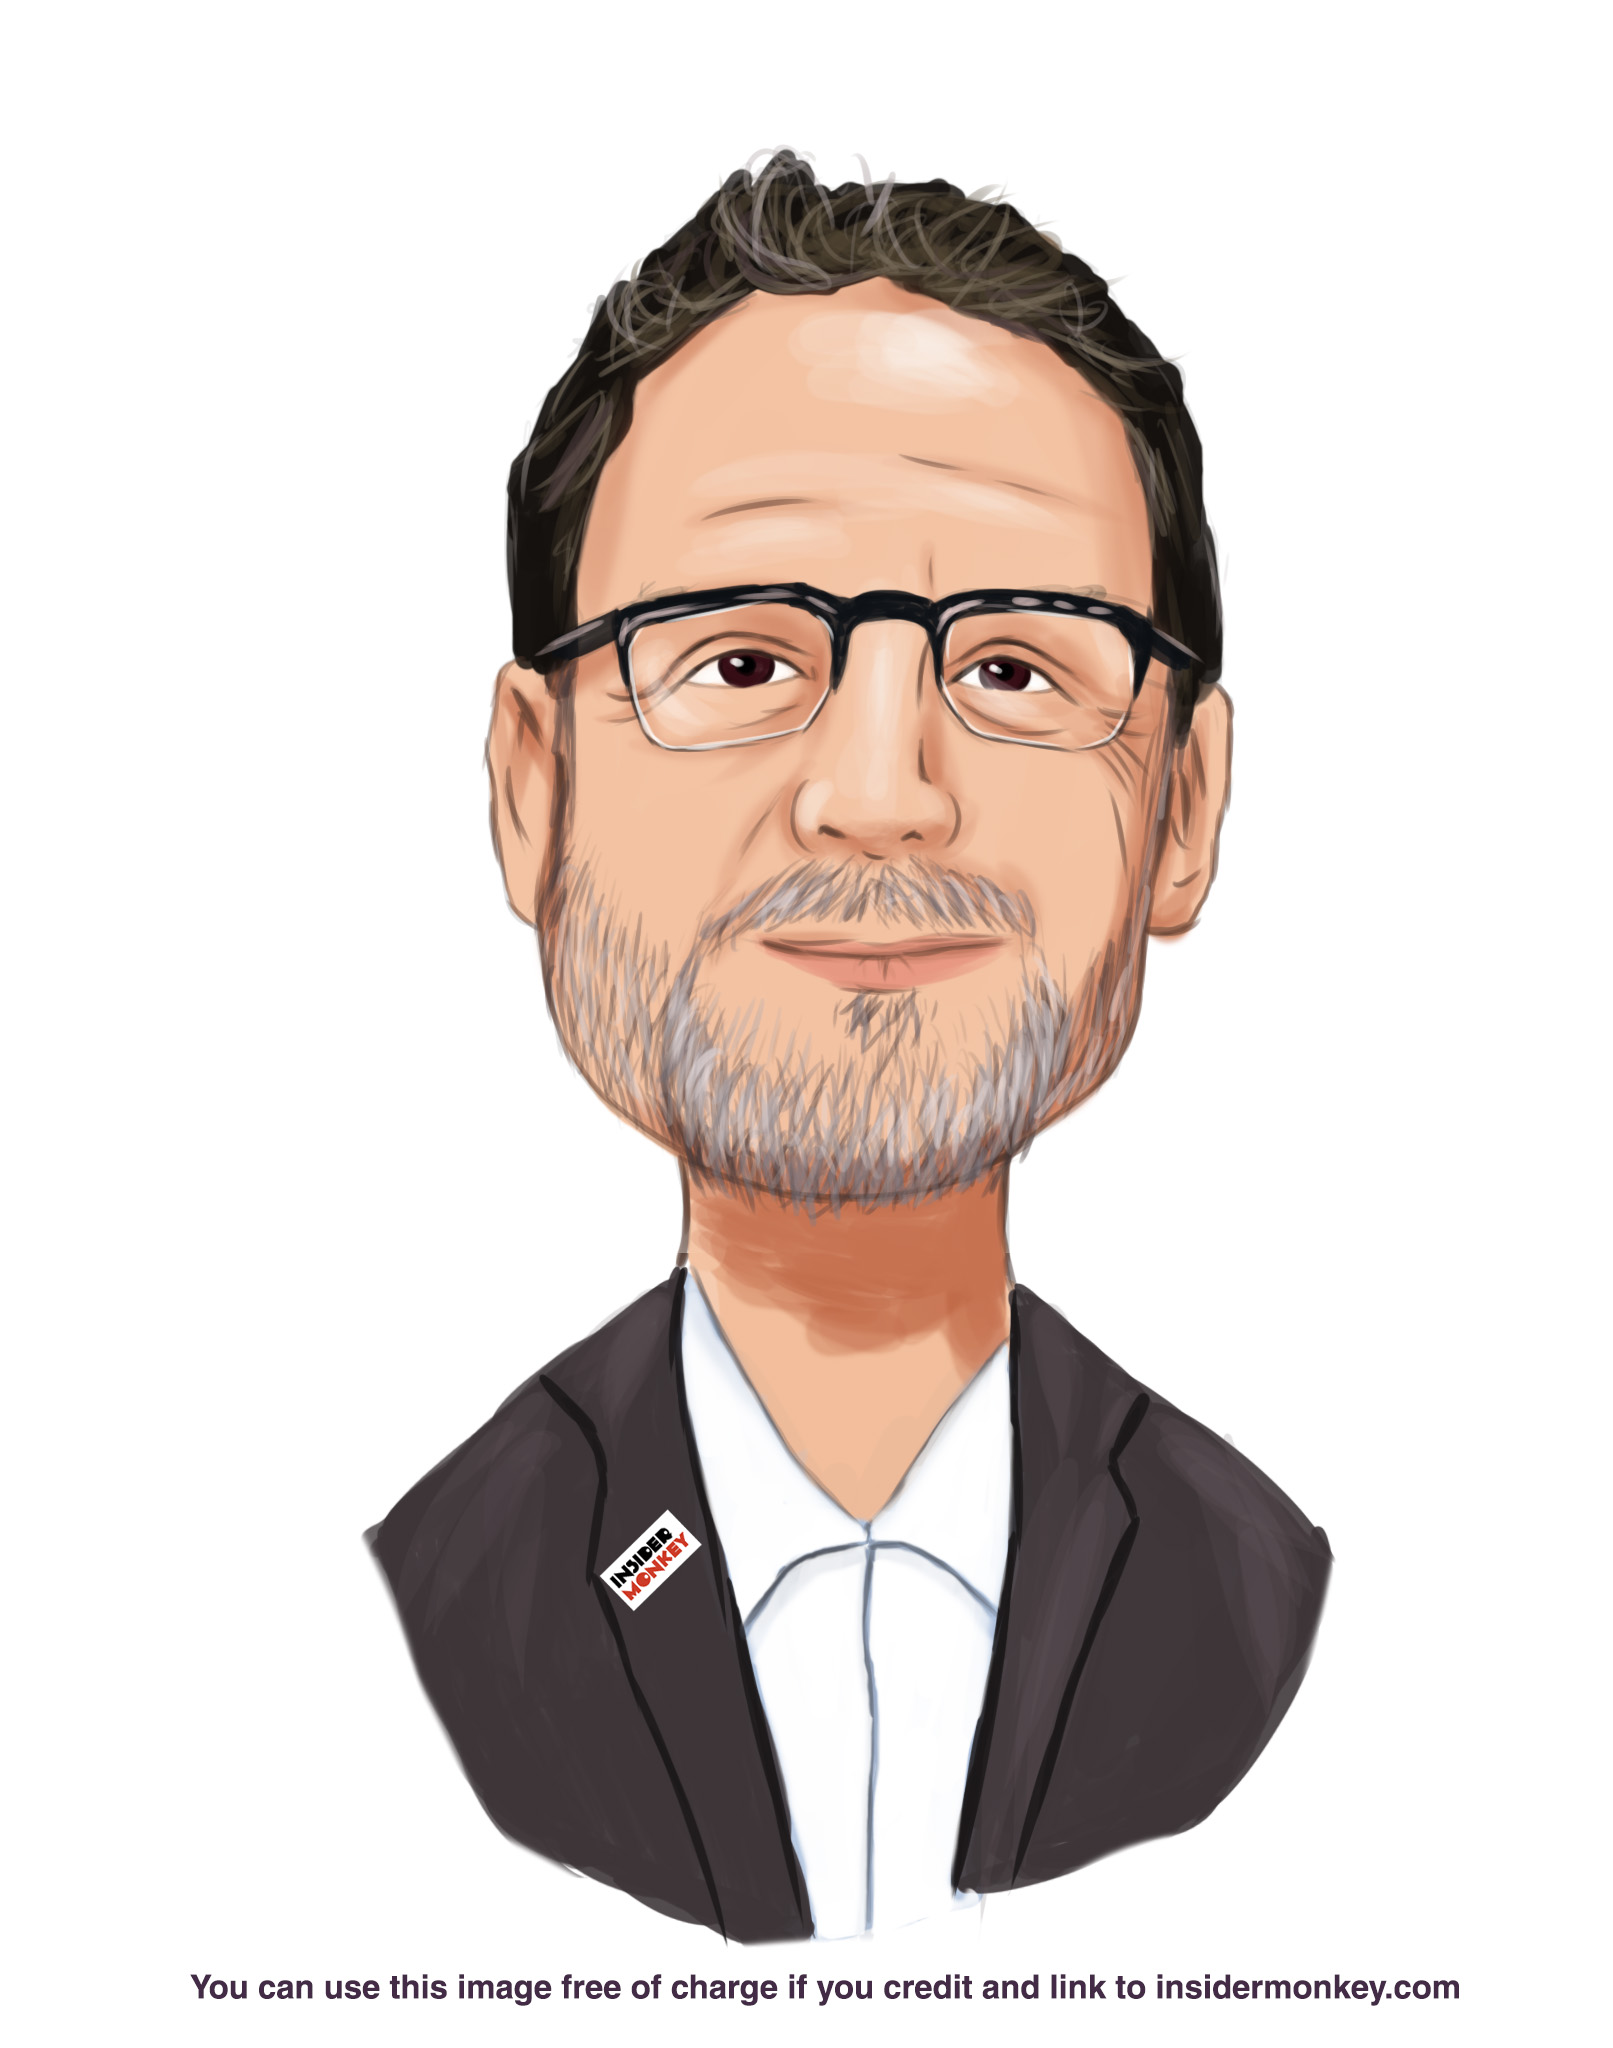 Here's What Hedge Fund Think About MYR Group Inc (MYRG